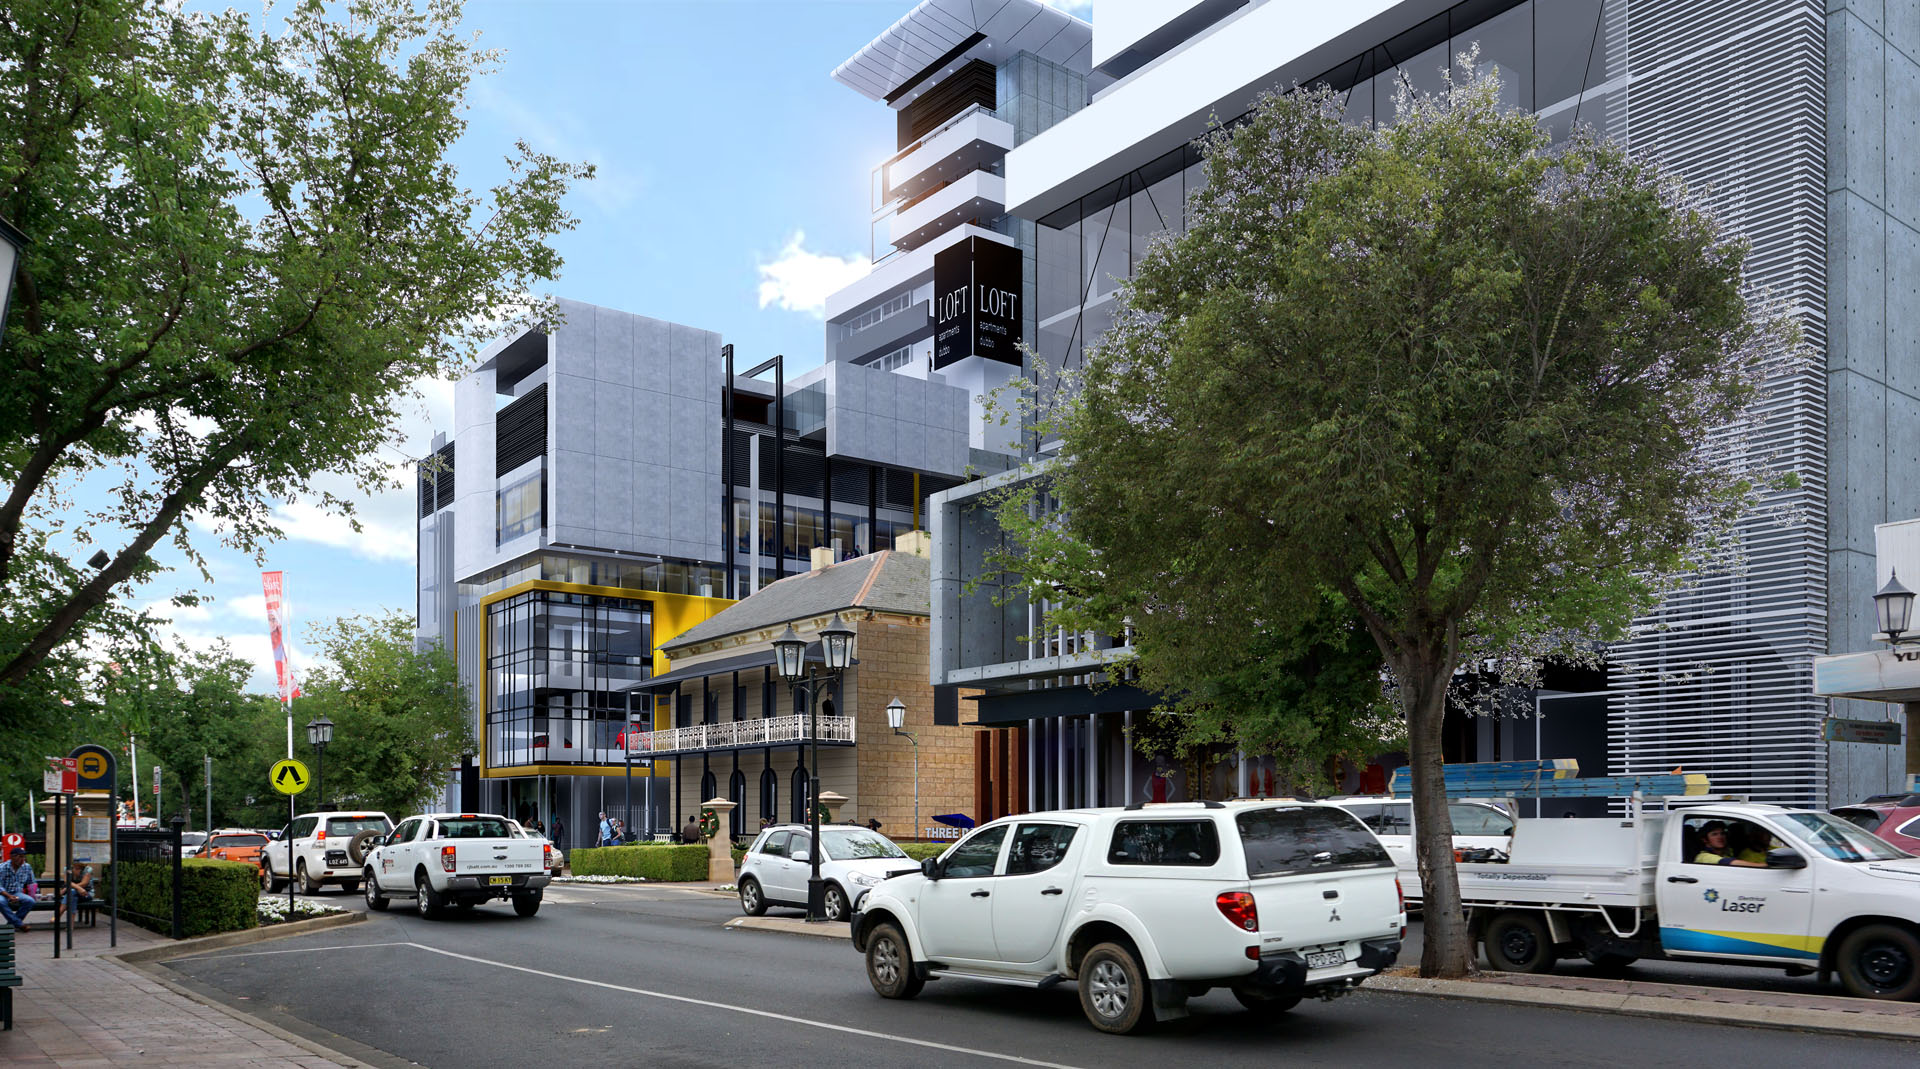 Maas Group Properties submit DA for major mixed-use development in the main street of Dubbo.